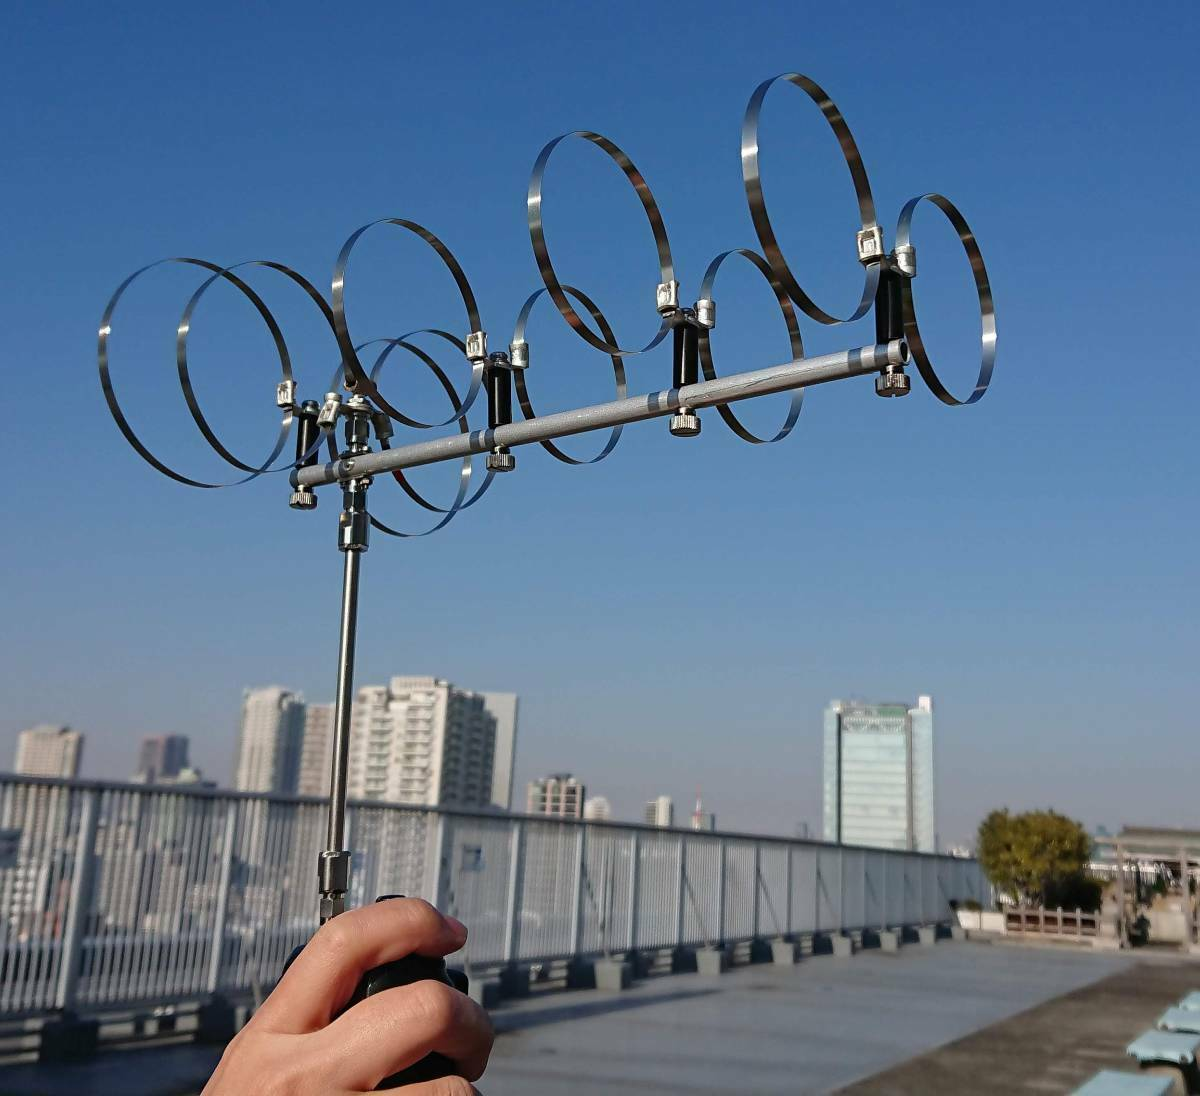 Handy 5 Elements 1200 Mhz Twin Loop Portable Antenna